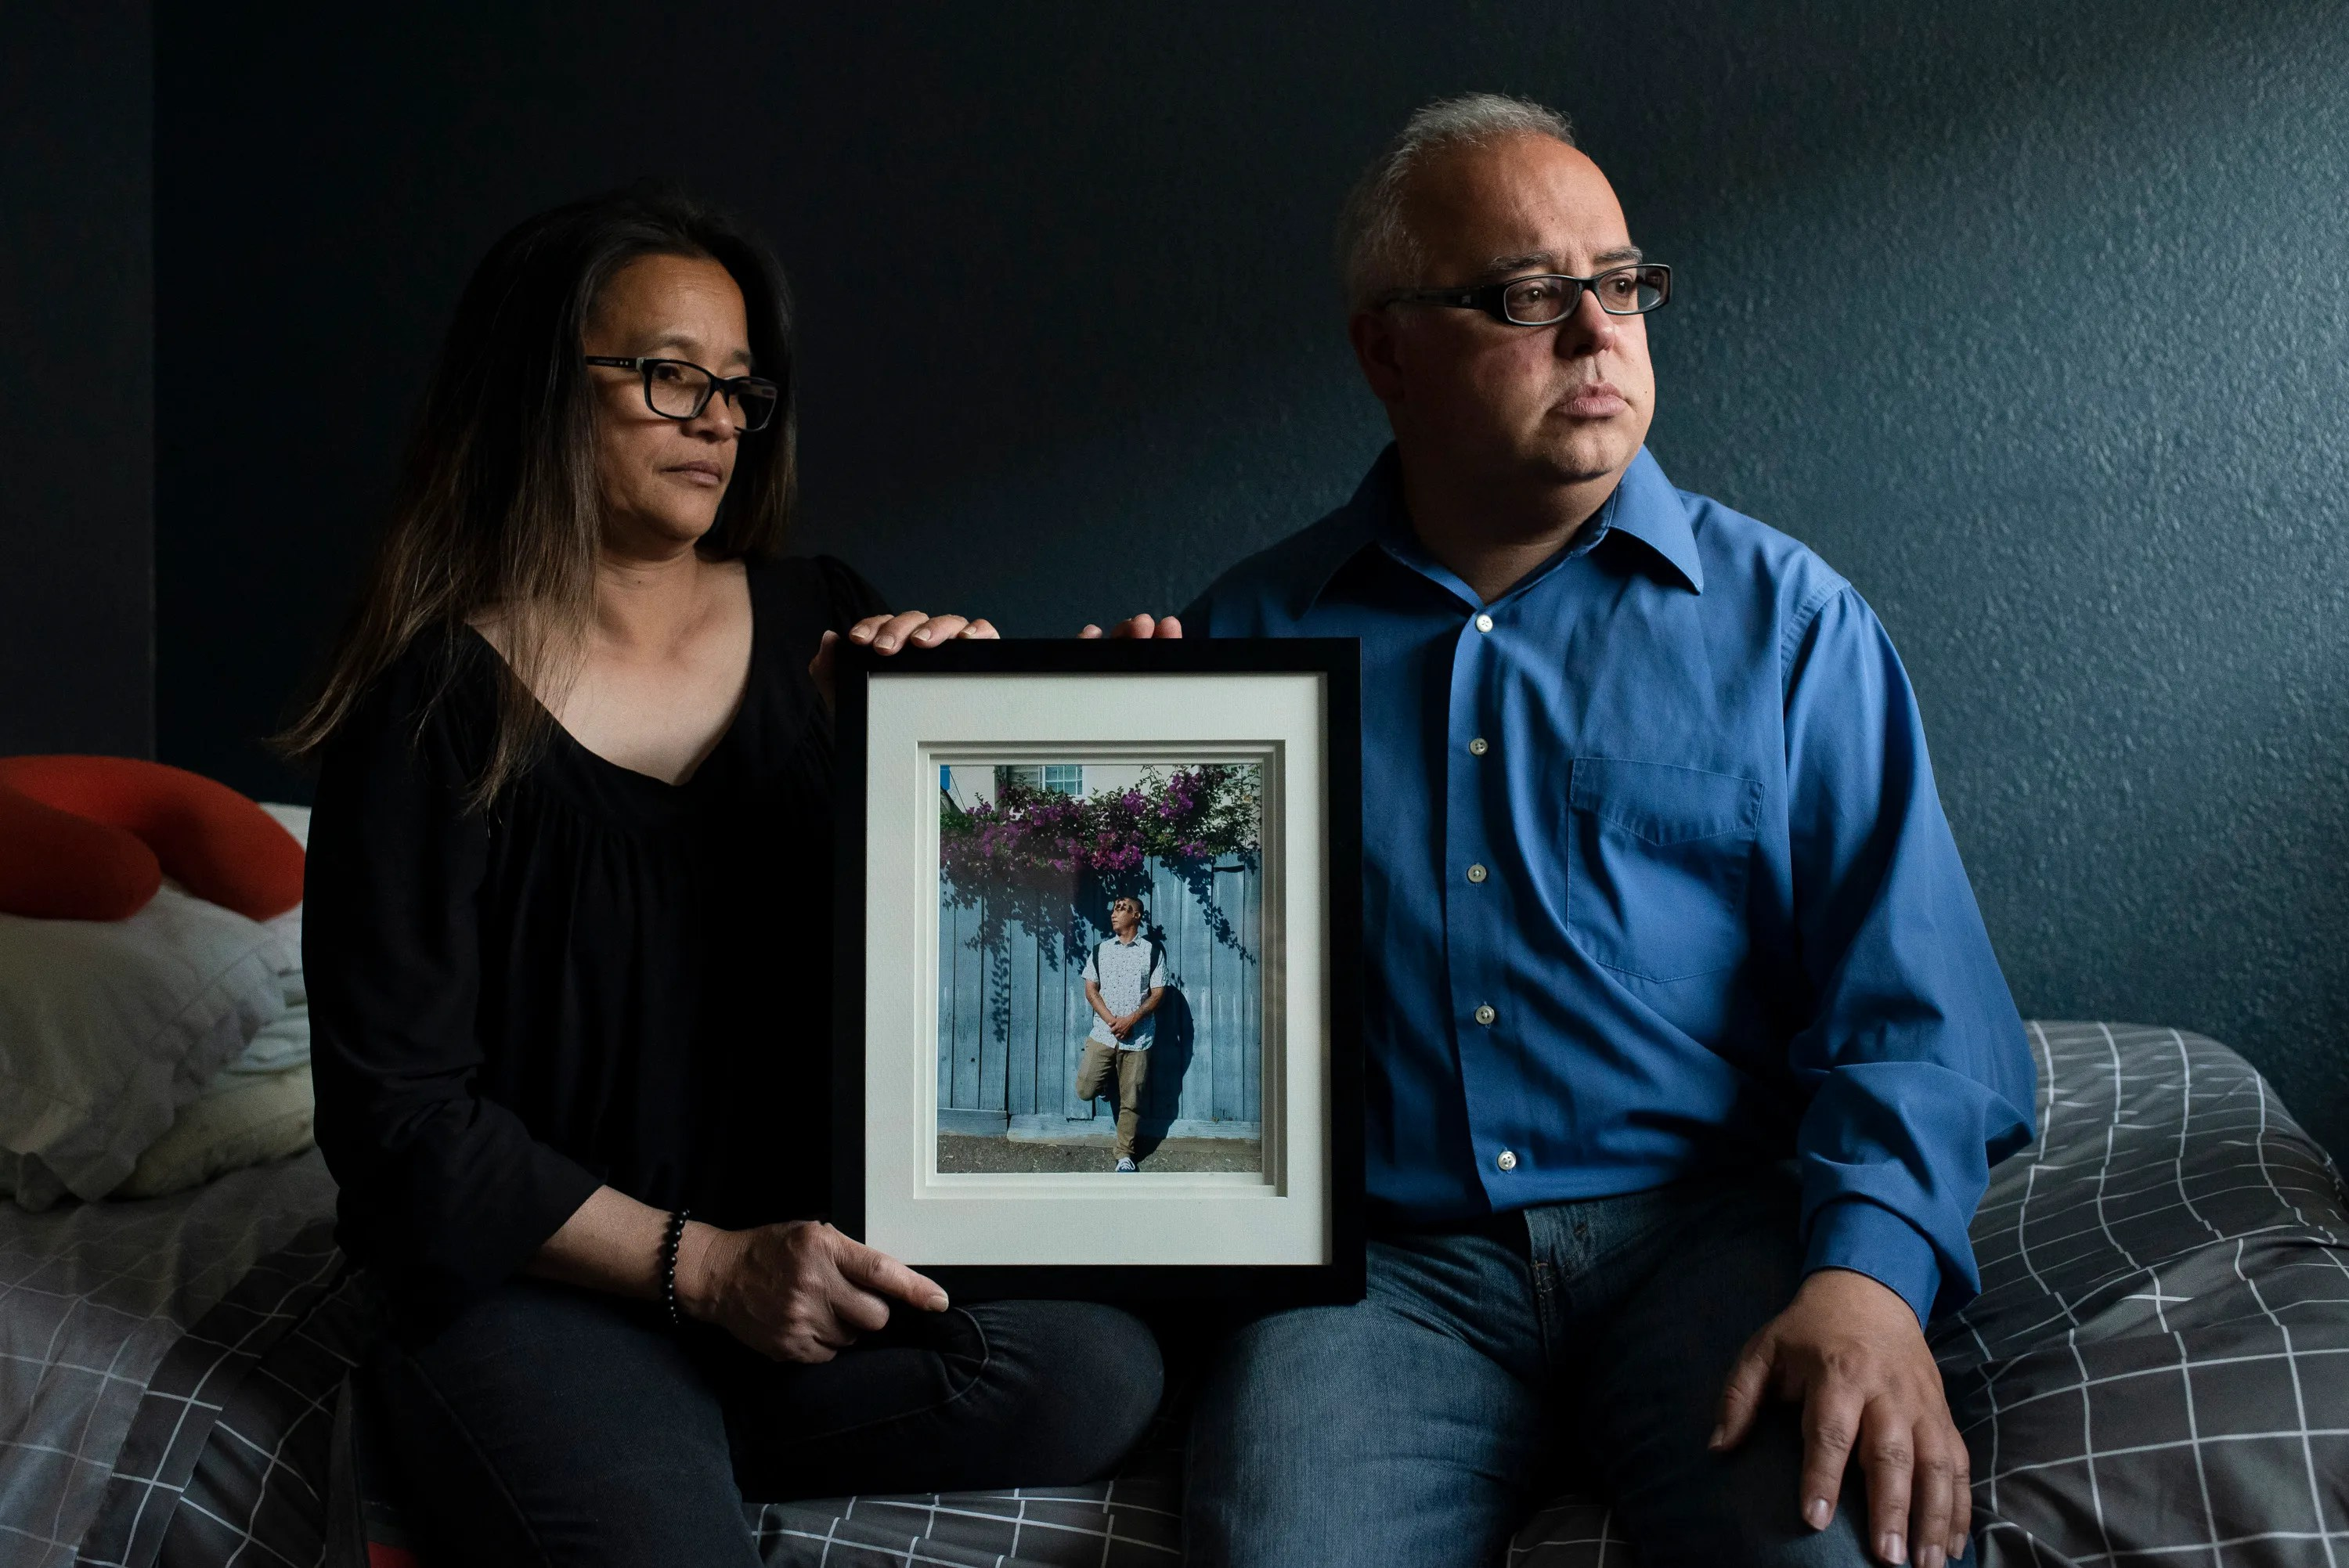 Angelo's parents Cassandra Quinto-Collins, left, and Robert Collins, right, hold a photo of Angelo in Angelo's bedroom on May 9, 2021 in Antioch, Calif. Angelo Quinto, a 30-year-old Filipino Navy veteran, was killed by an Antioch, Calif. police officer in Dec. 2020 while experiencing a mental health crisis. Quinto's sister, Bella Collins, had called police to their family home after Angelo began acting unusually. The officer pinned Angelo's neck with his knee; a video taken by a family member shows Angelo unconscious under the weight of the officer's knee. He died three days later, after being taken to the hospital.